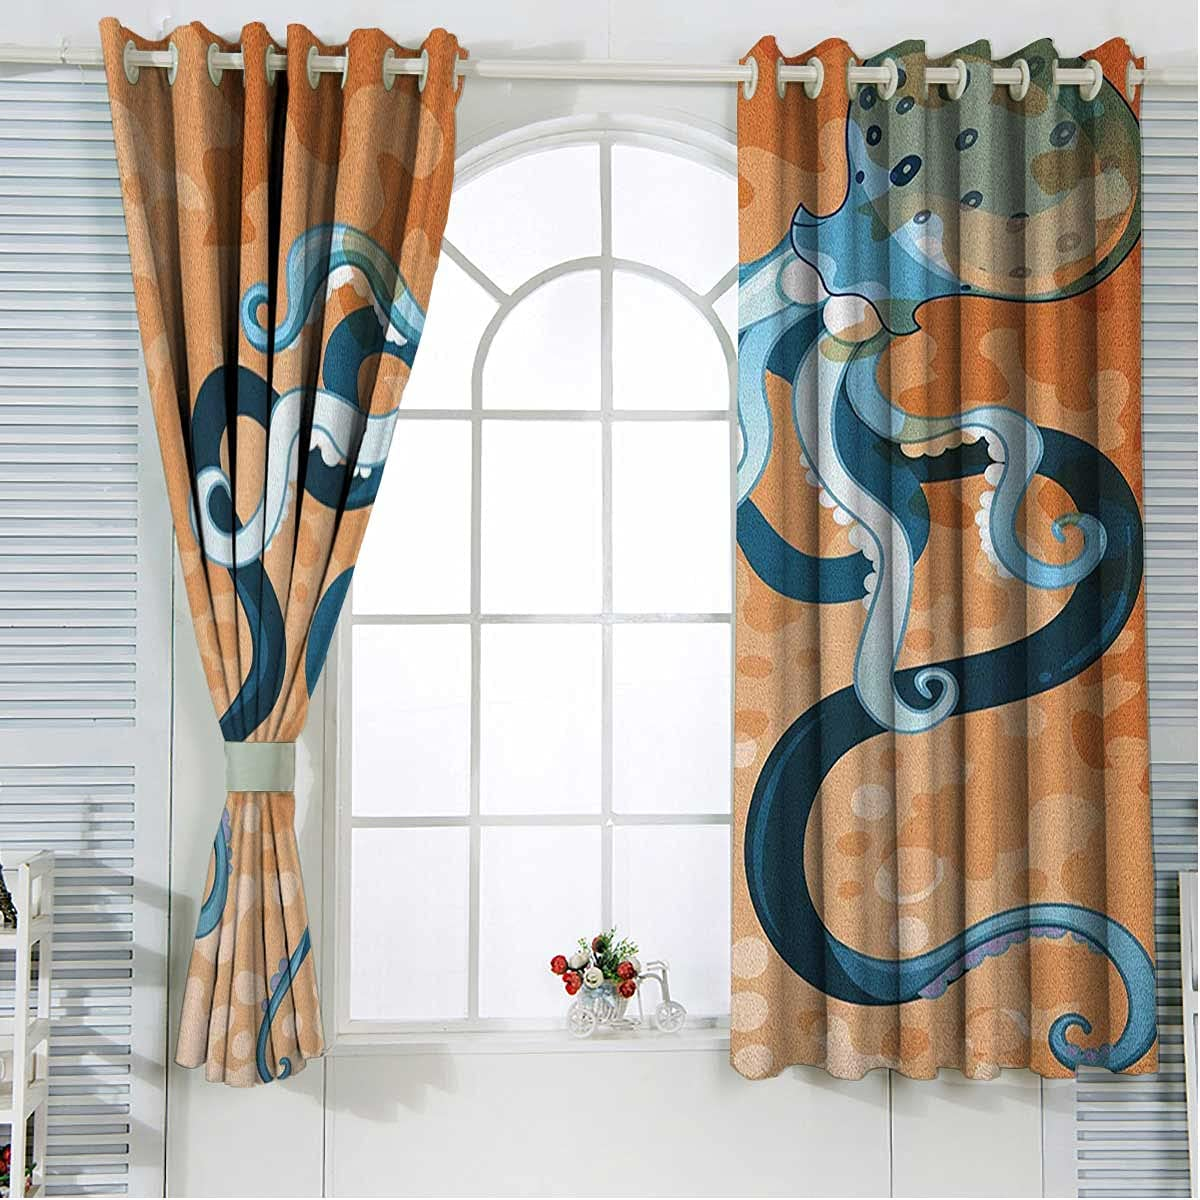 2021 autumn and winter new Octopus Ranking TOP4 Window Curtain Panels 63 Inches Room Orange Blue Length